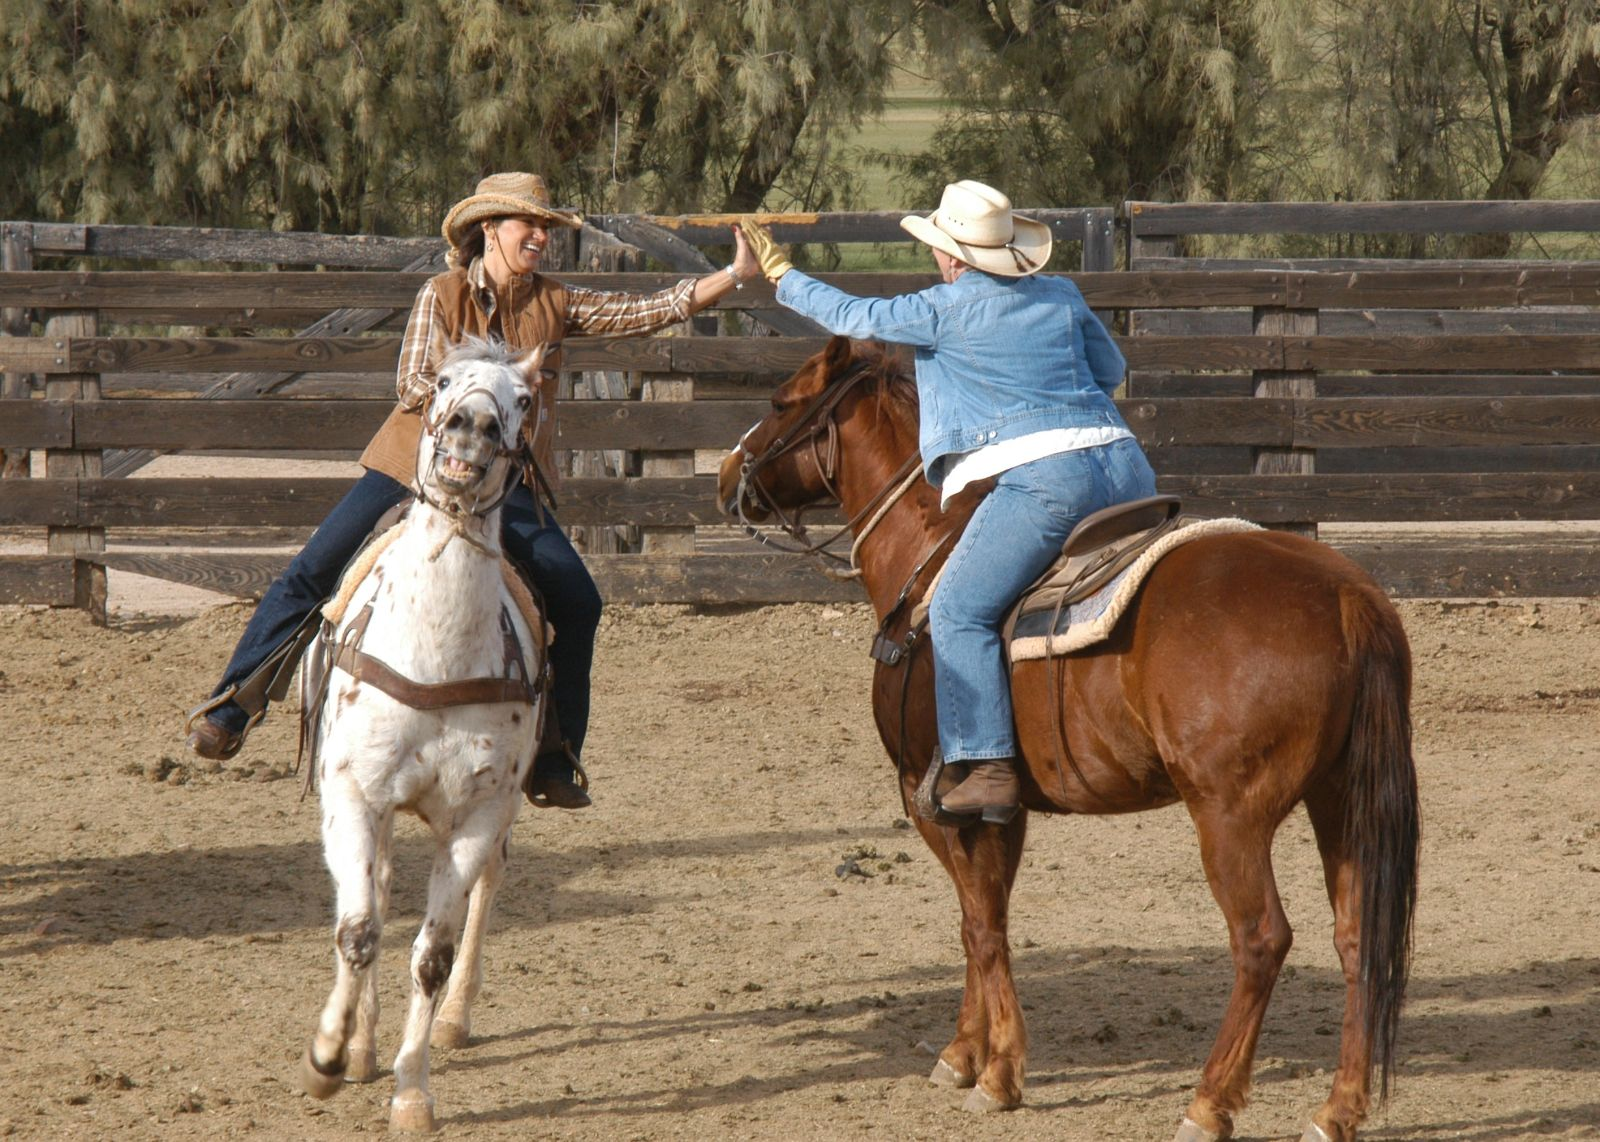 Cowgirls horseback riding at our arizona ranch